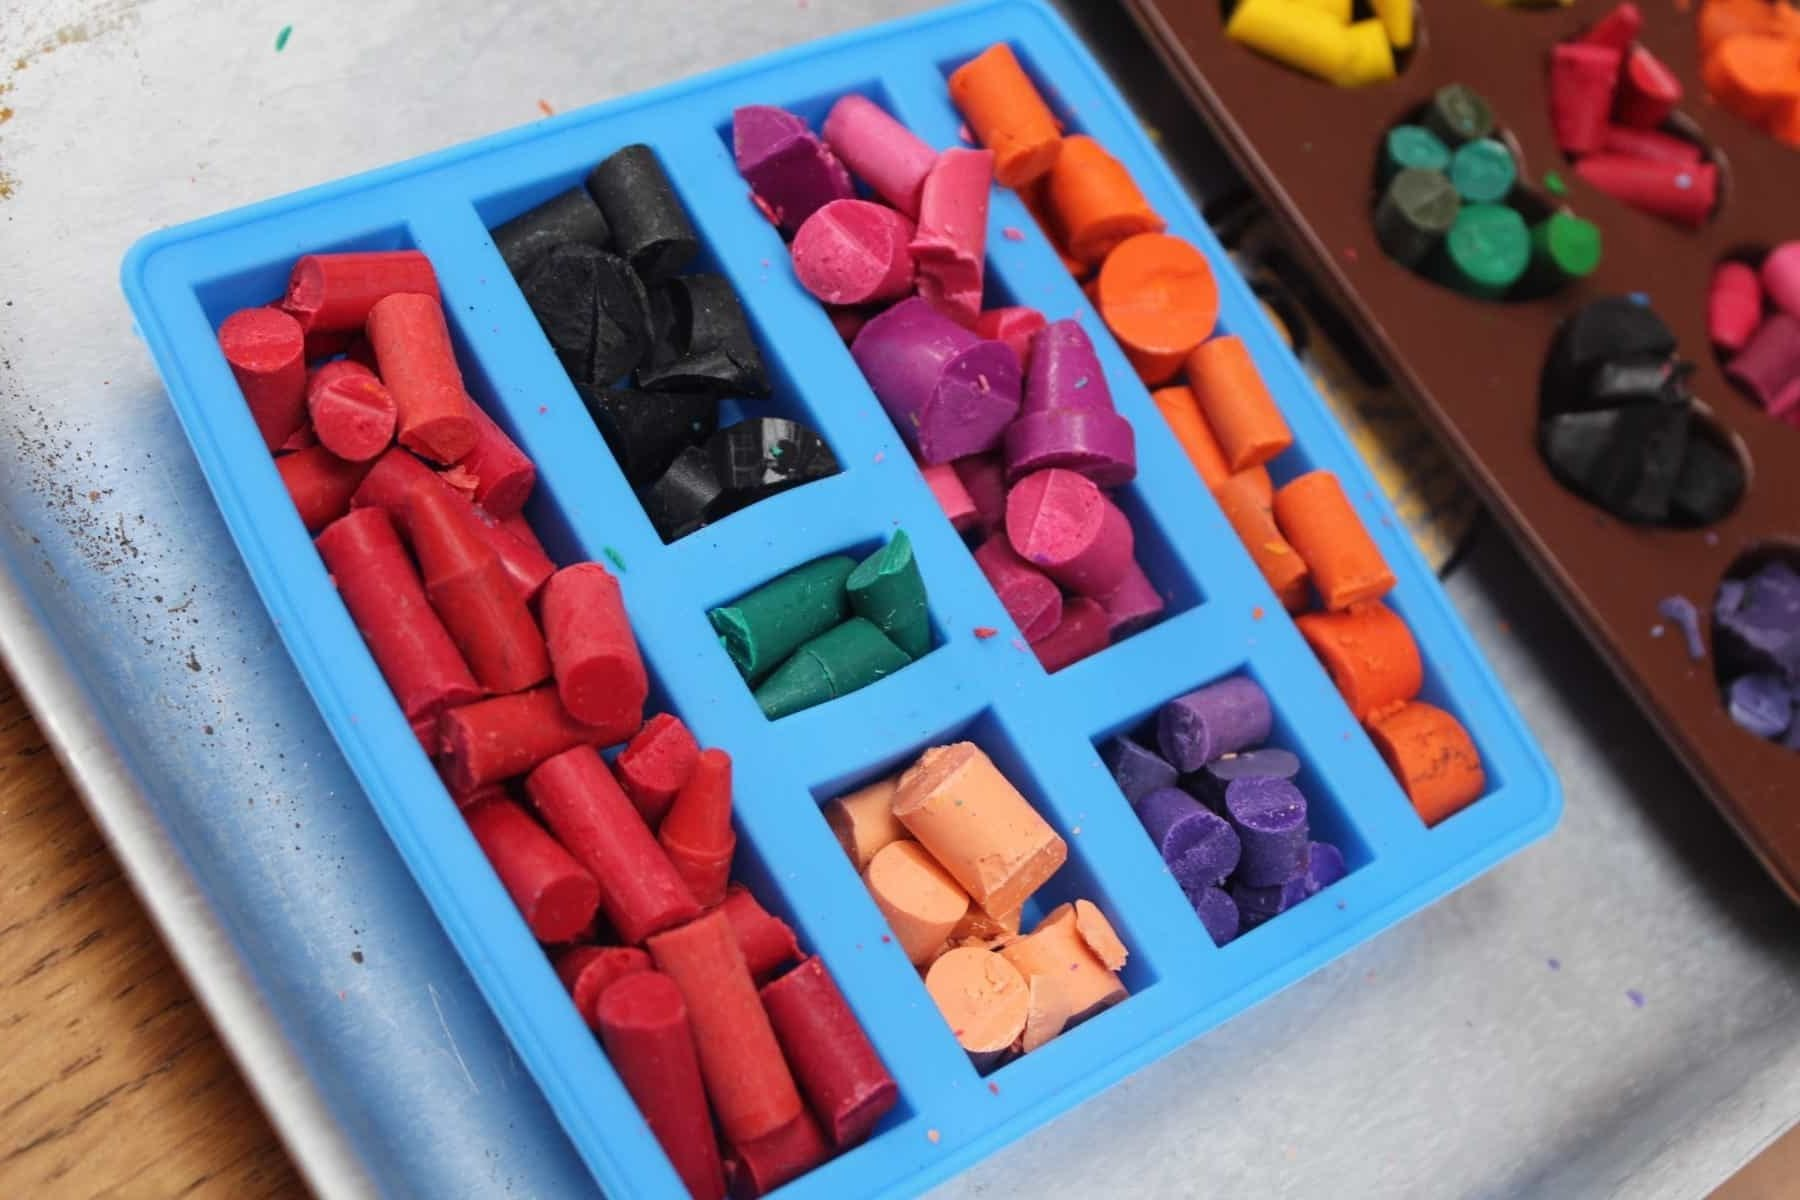 How to Make Homemade Crayon Shapes